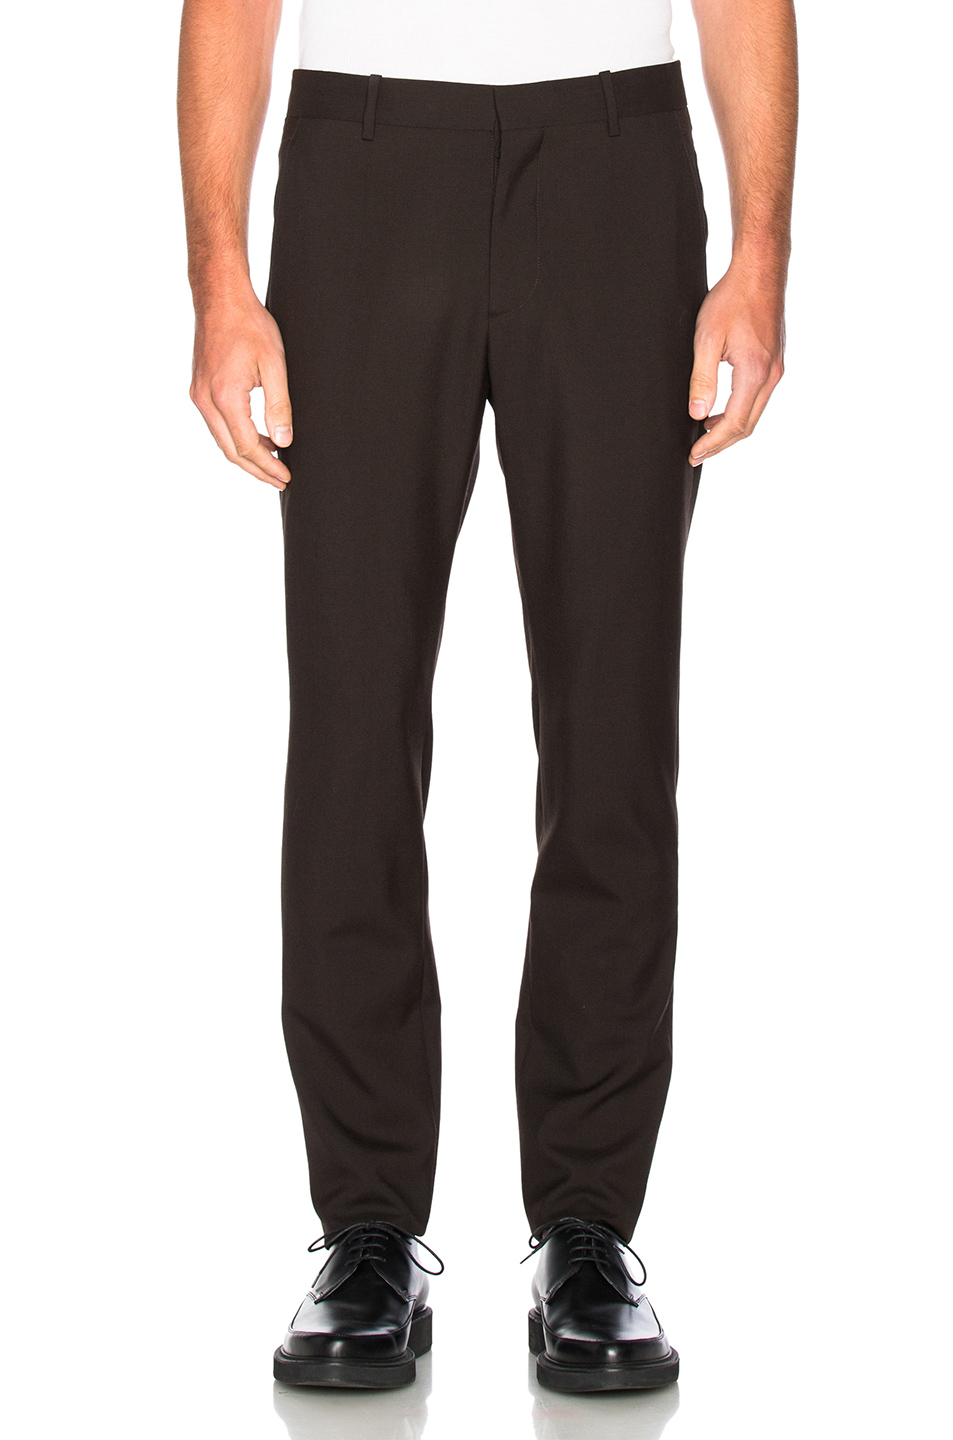 Marni Tropical Wool Slim Trousers in Brown